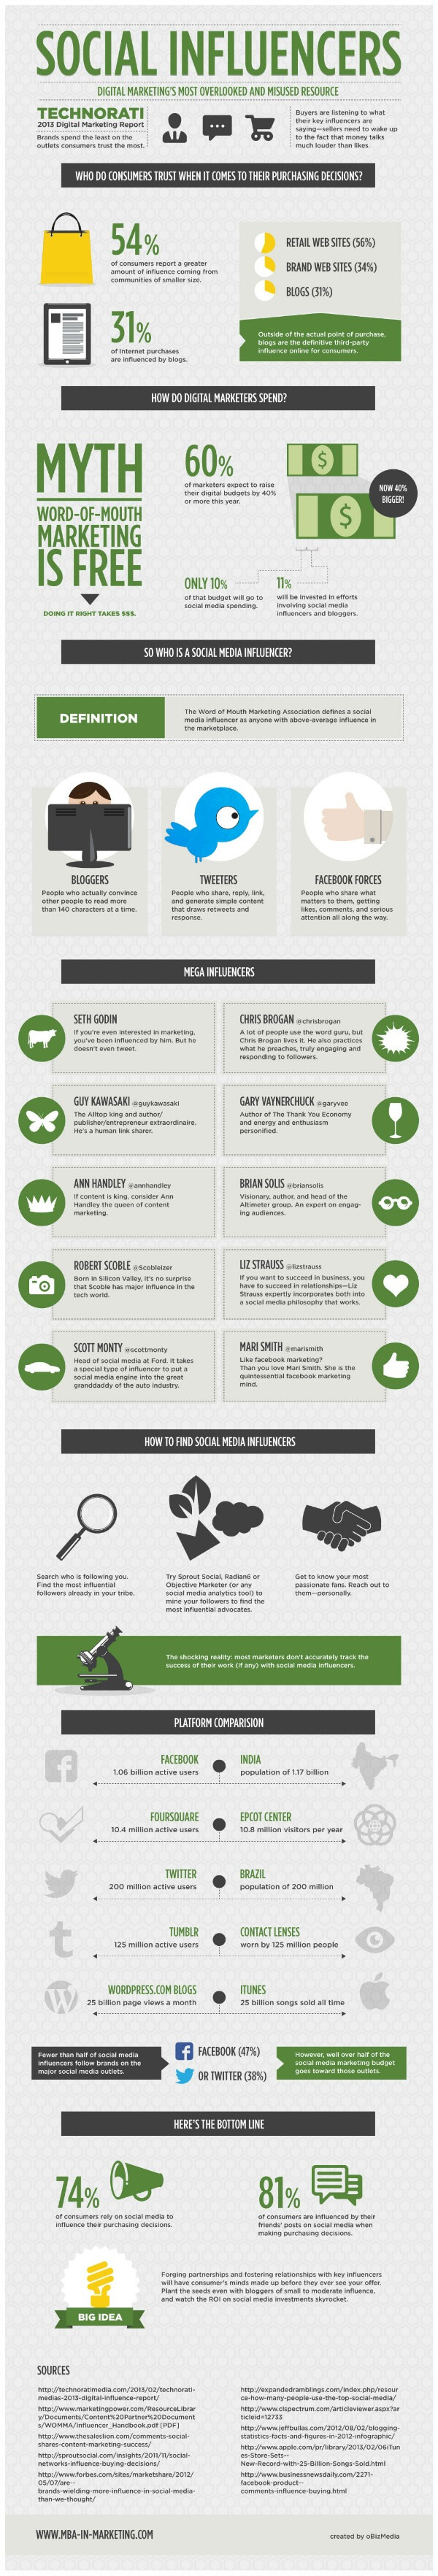 social influencers infographic